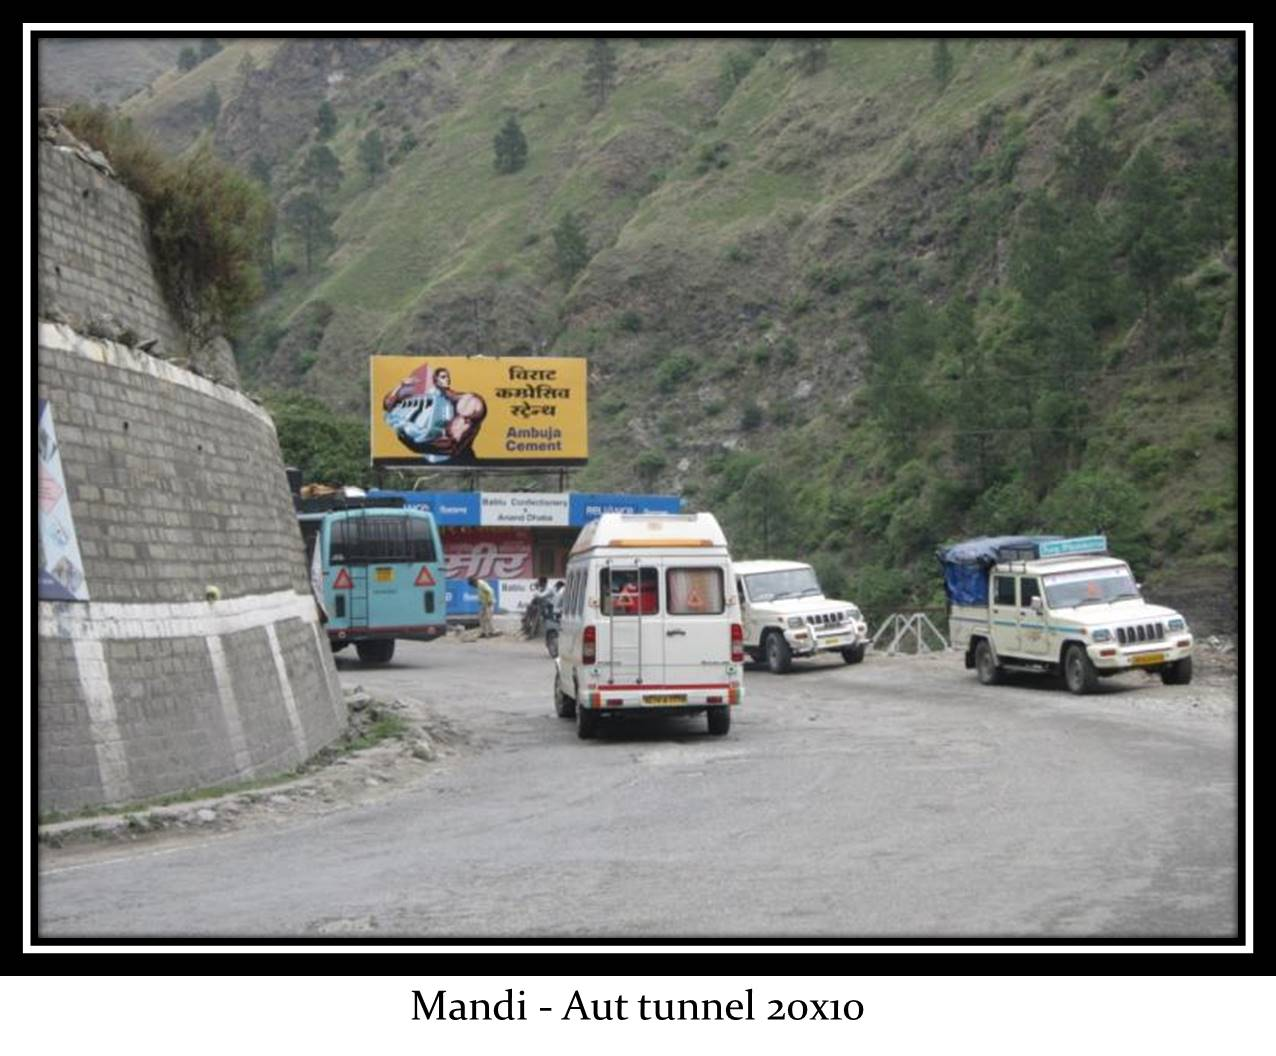 Aut tunnel, Mandi